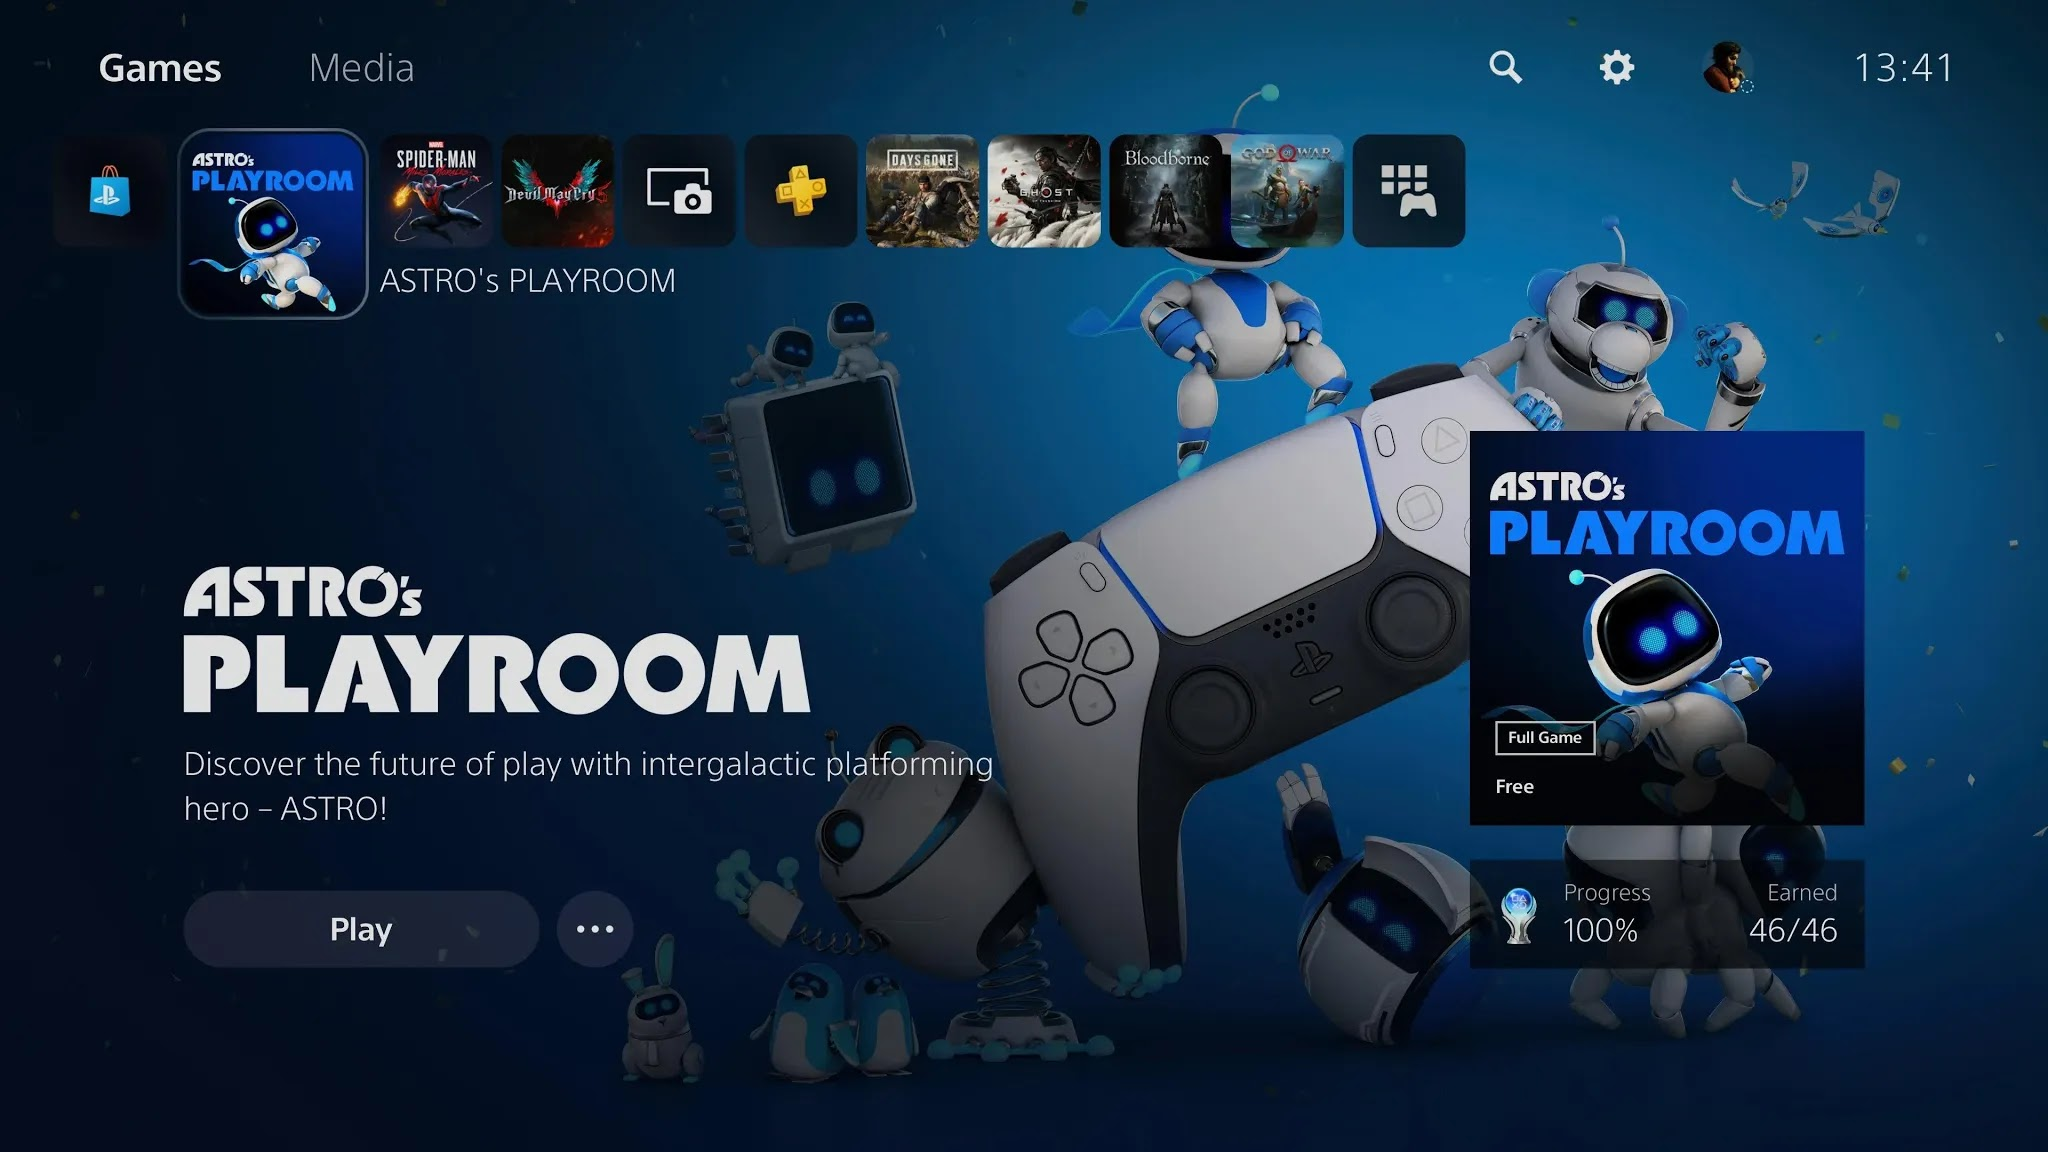 How to clean the PS5 news feed